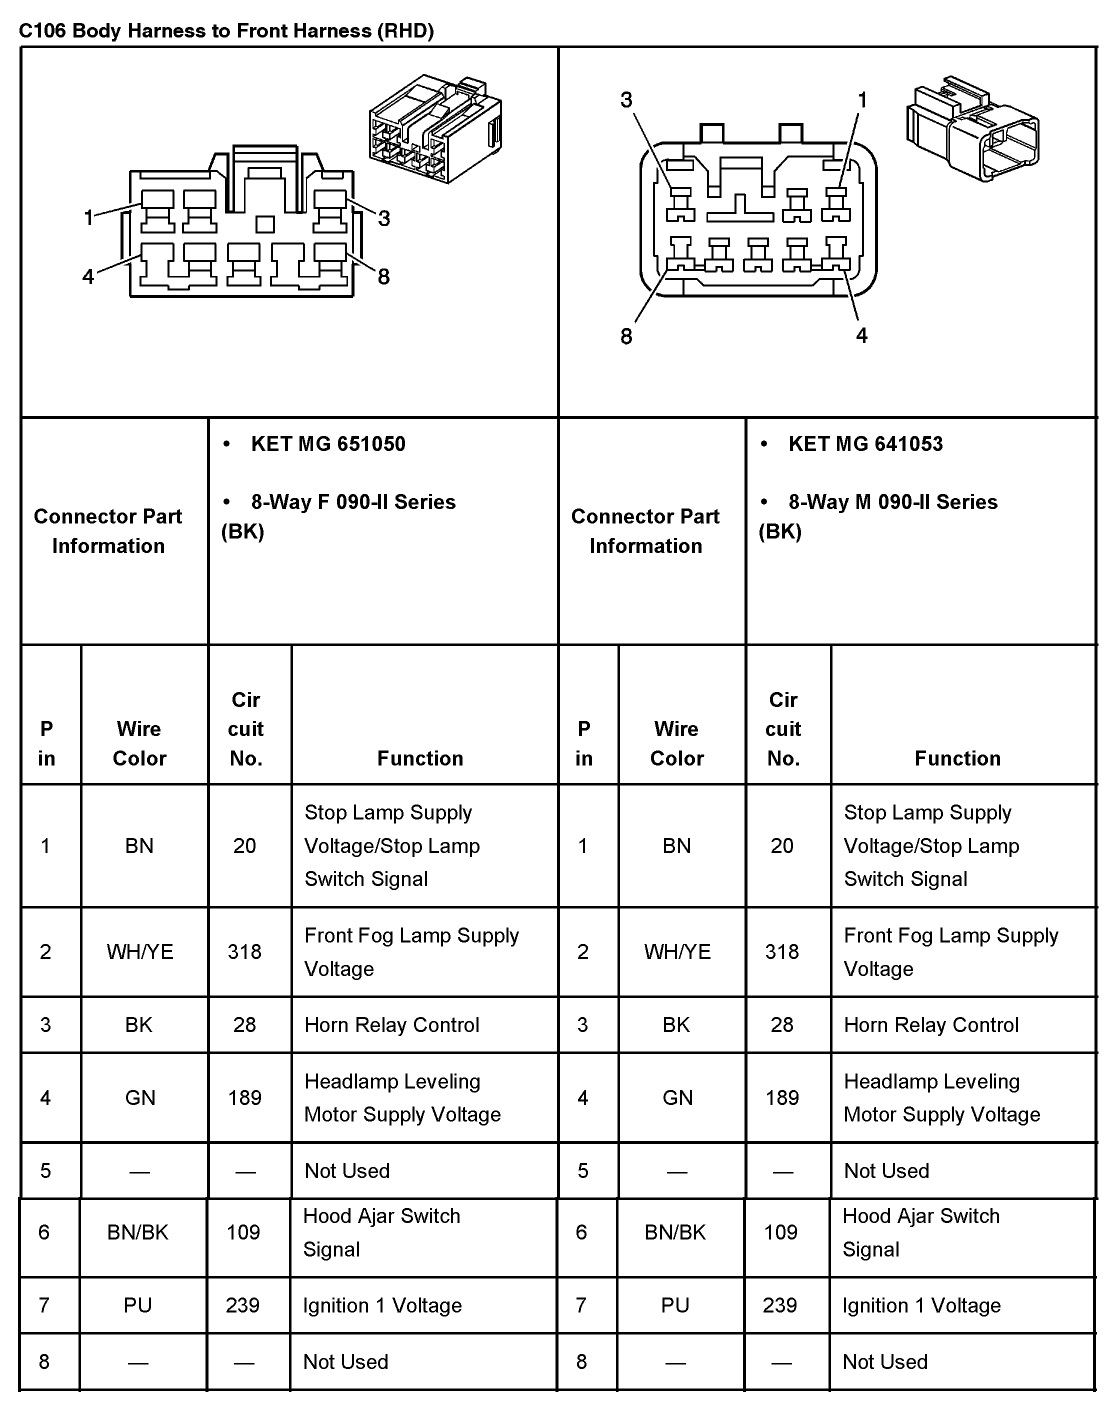 2009 Chevy Cobalt Wiring Diagram Books Of Fuse 2005 Aveo Master Connector List And Diagrams Engine Alternator